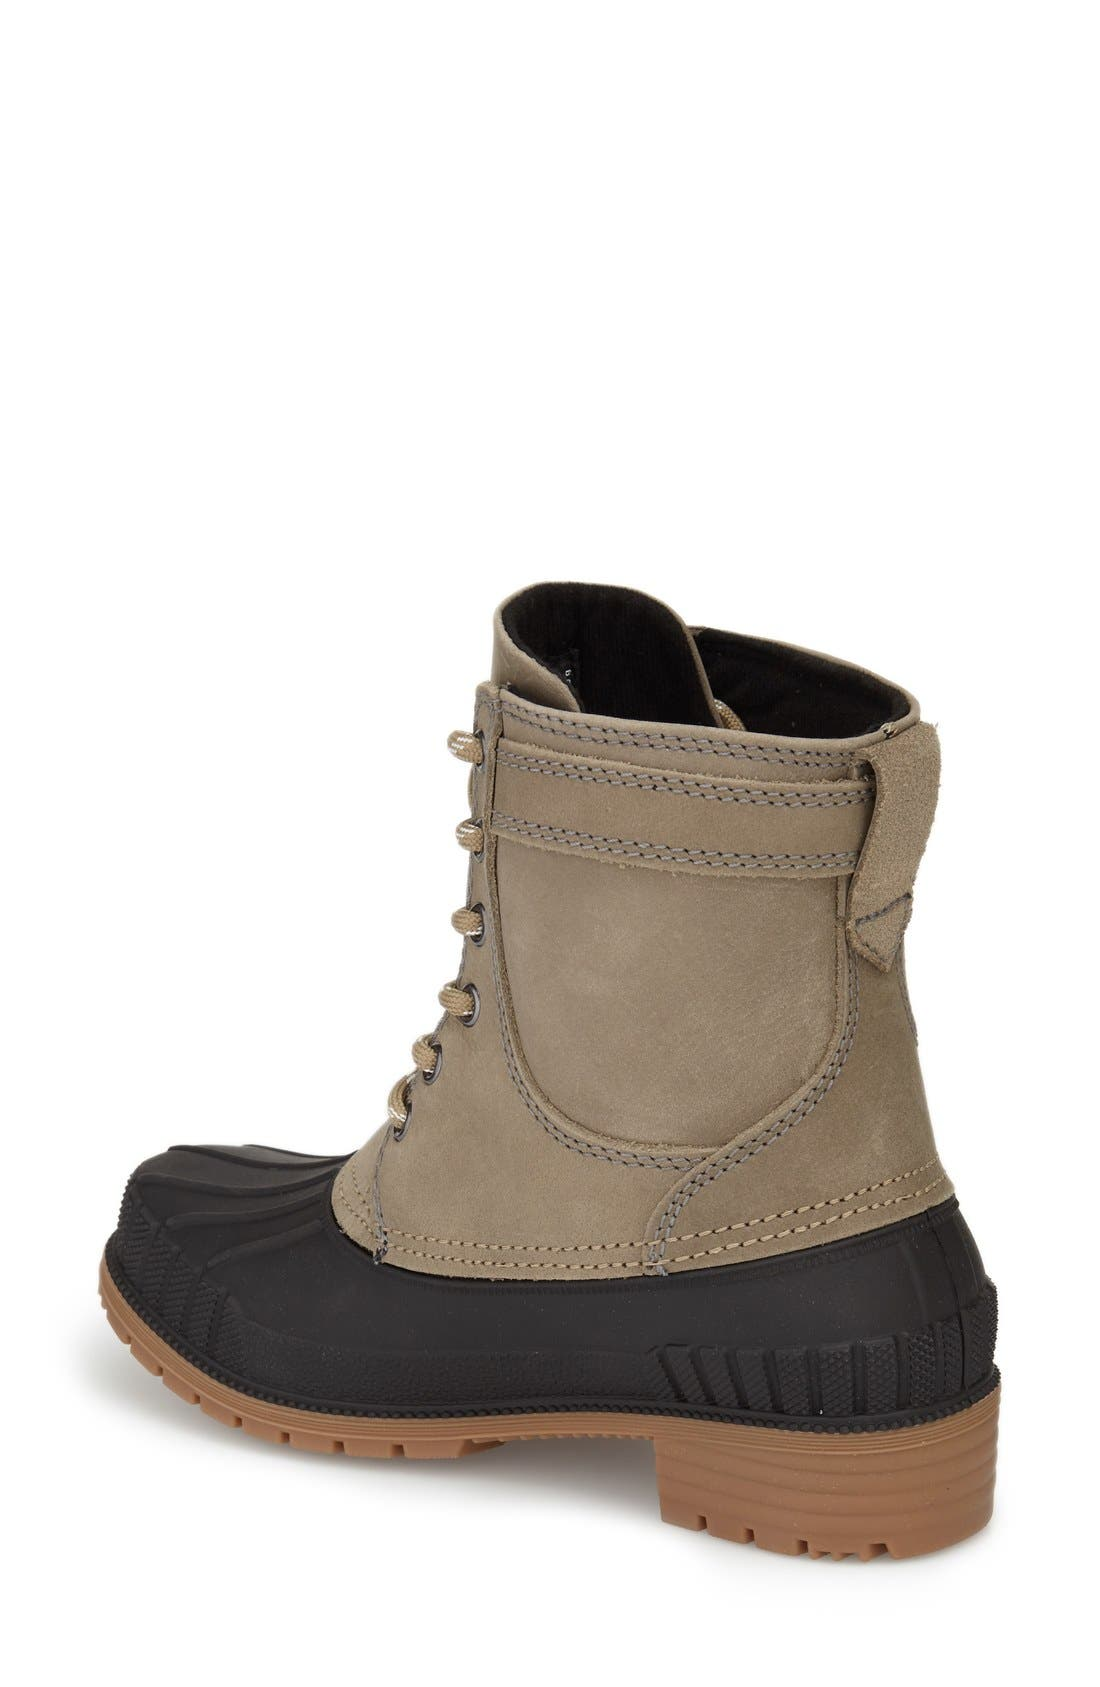 Evelyn Waterproof Boot,                             Alternate thumbnail 2, color,                             Taupe Leather